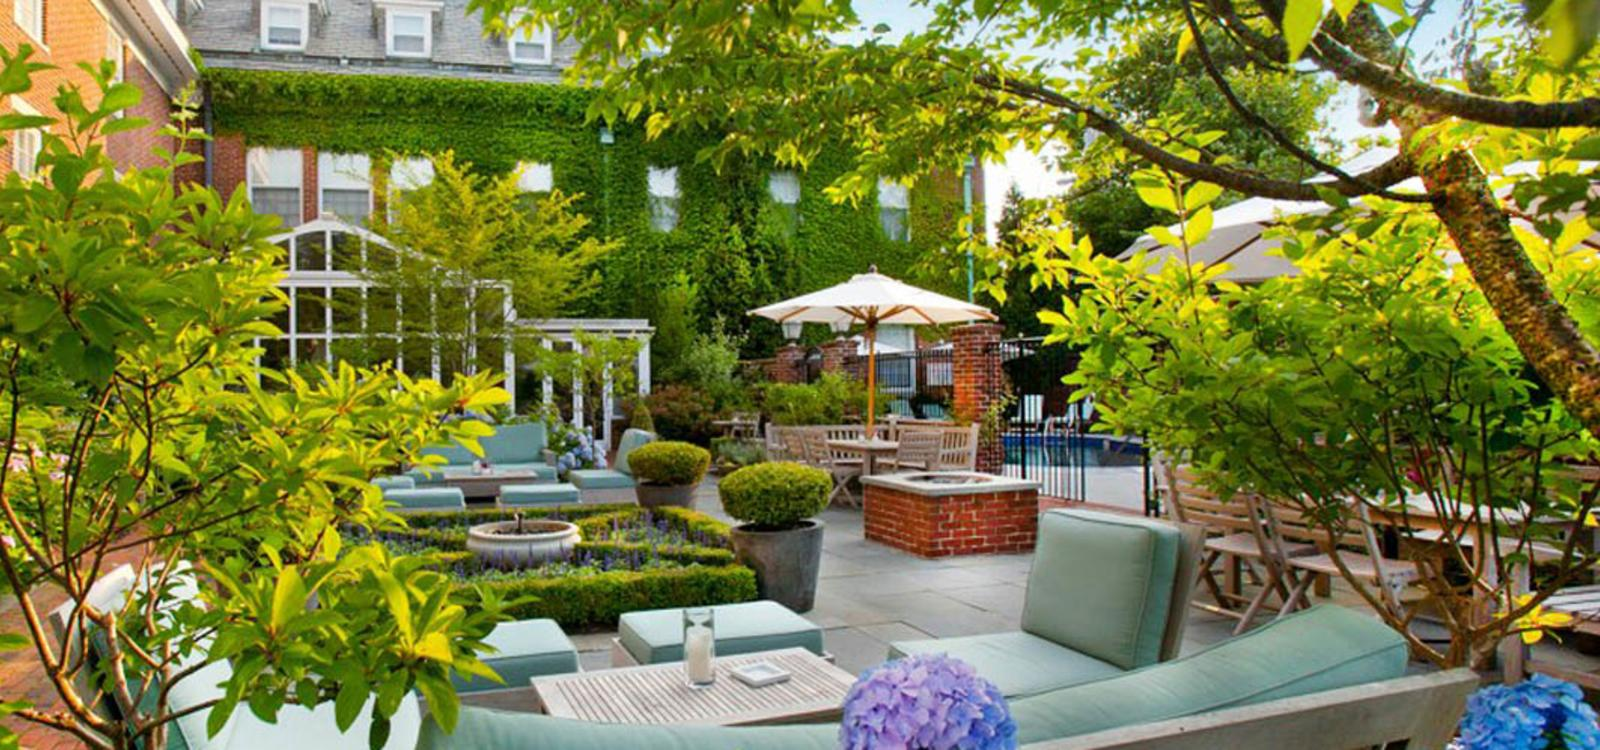 Outdoor Indulgences. These Al Fresco Patios, Cozy Rooftop Bars And  Sprawling Seaside Lawns Are The Perfect Place To Get Your Foodie On, With A  Side Serving ...